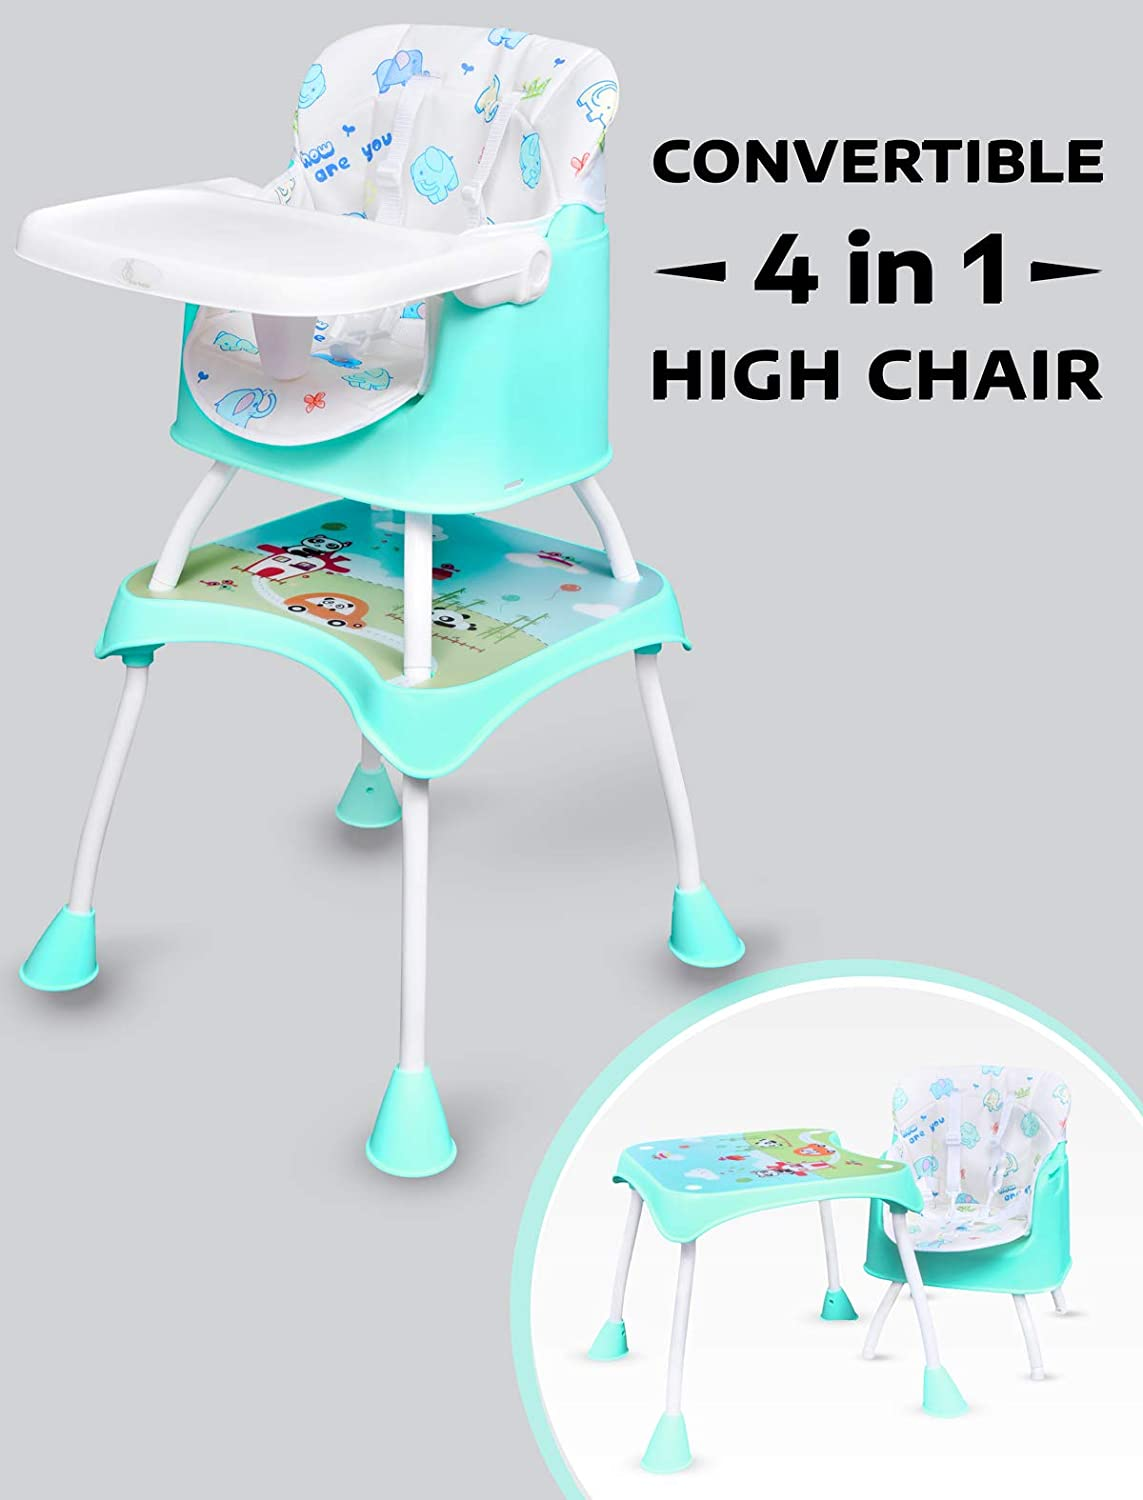 R for Rabbit Cherry Berry Grand - The Convertible 4 in 1 Feeding High Chair for Baby/Kids (Lake Green)